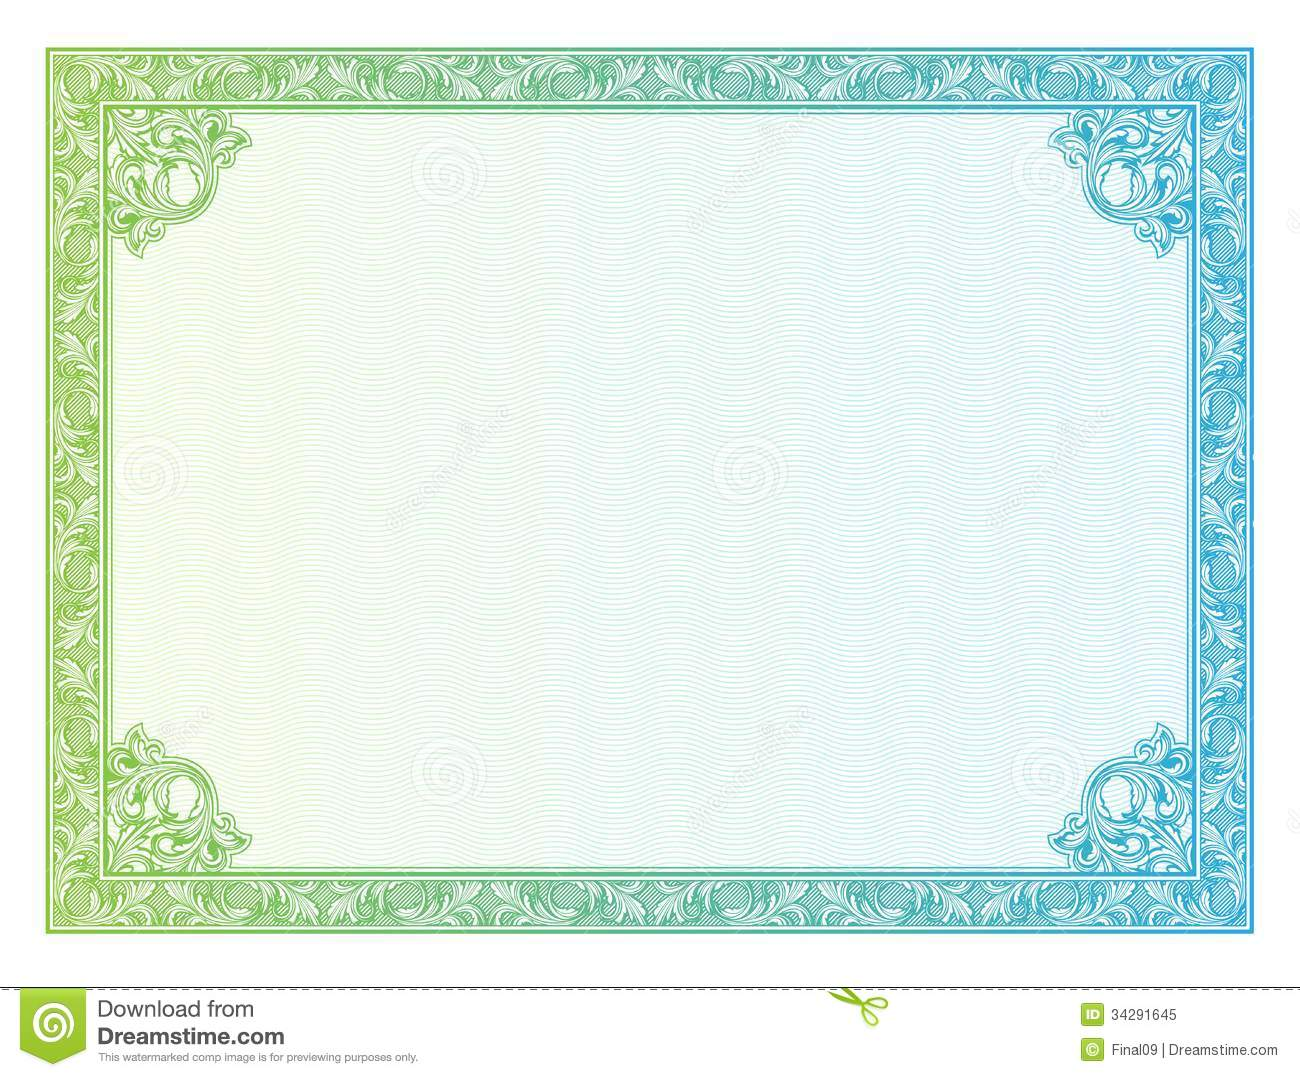 certificate border template - 18 vector certificate border templates shotgun images